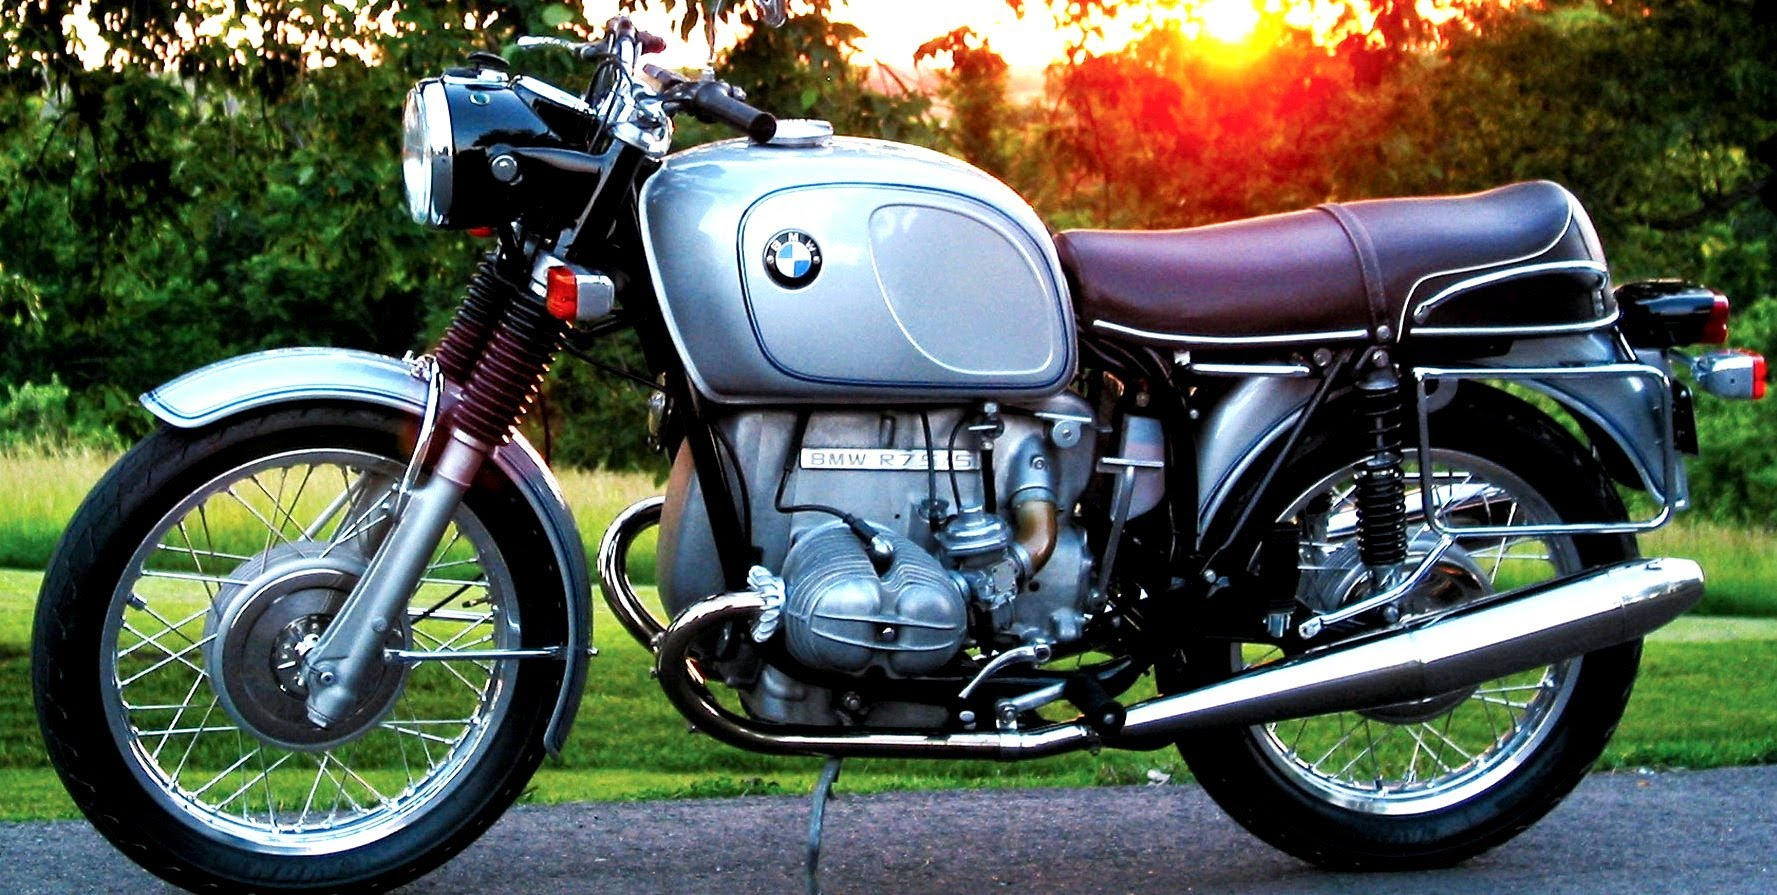 BMW R65GS 1988 images #77711